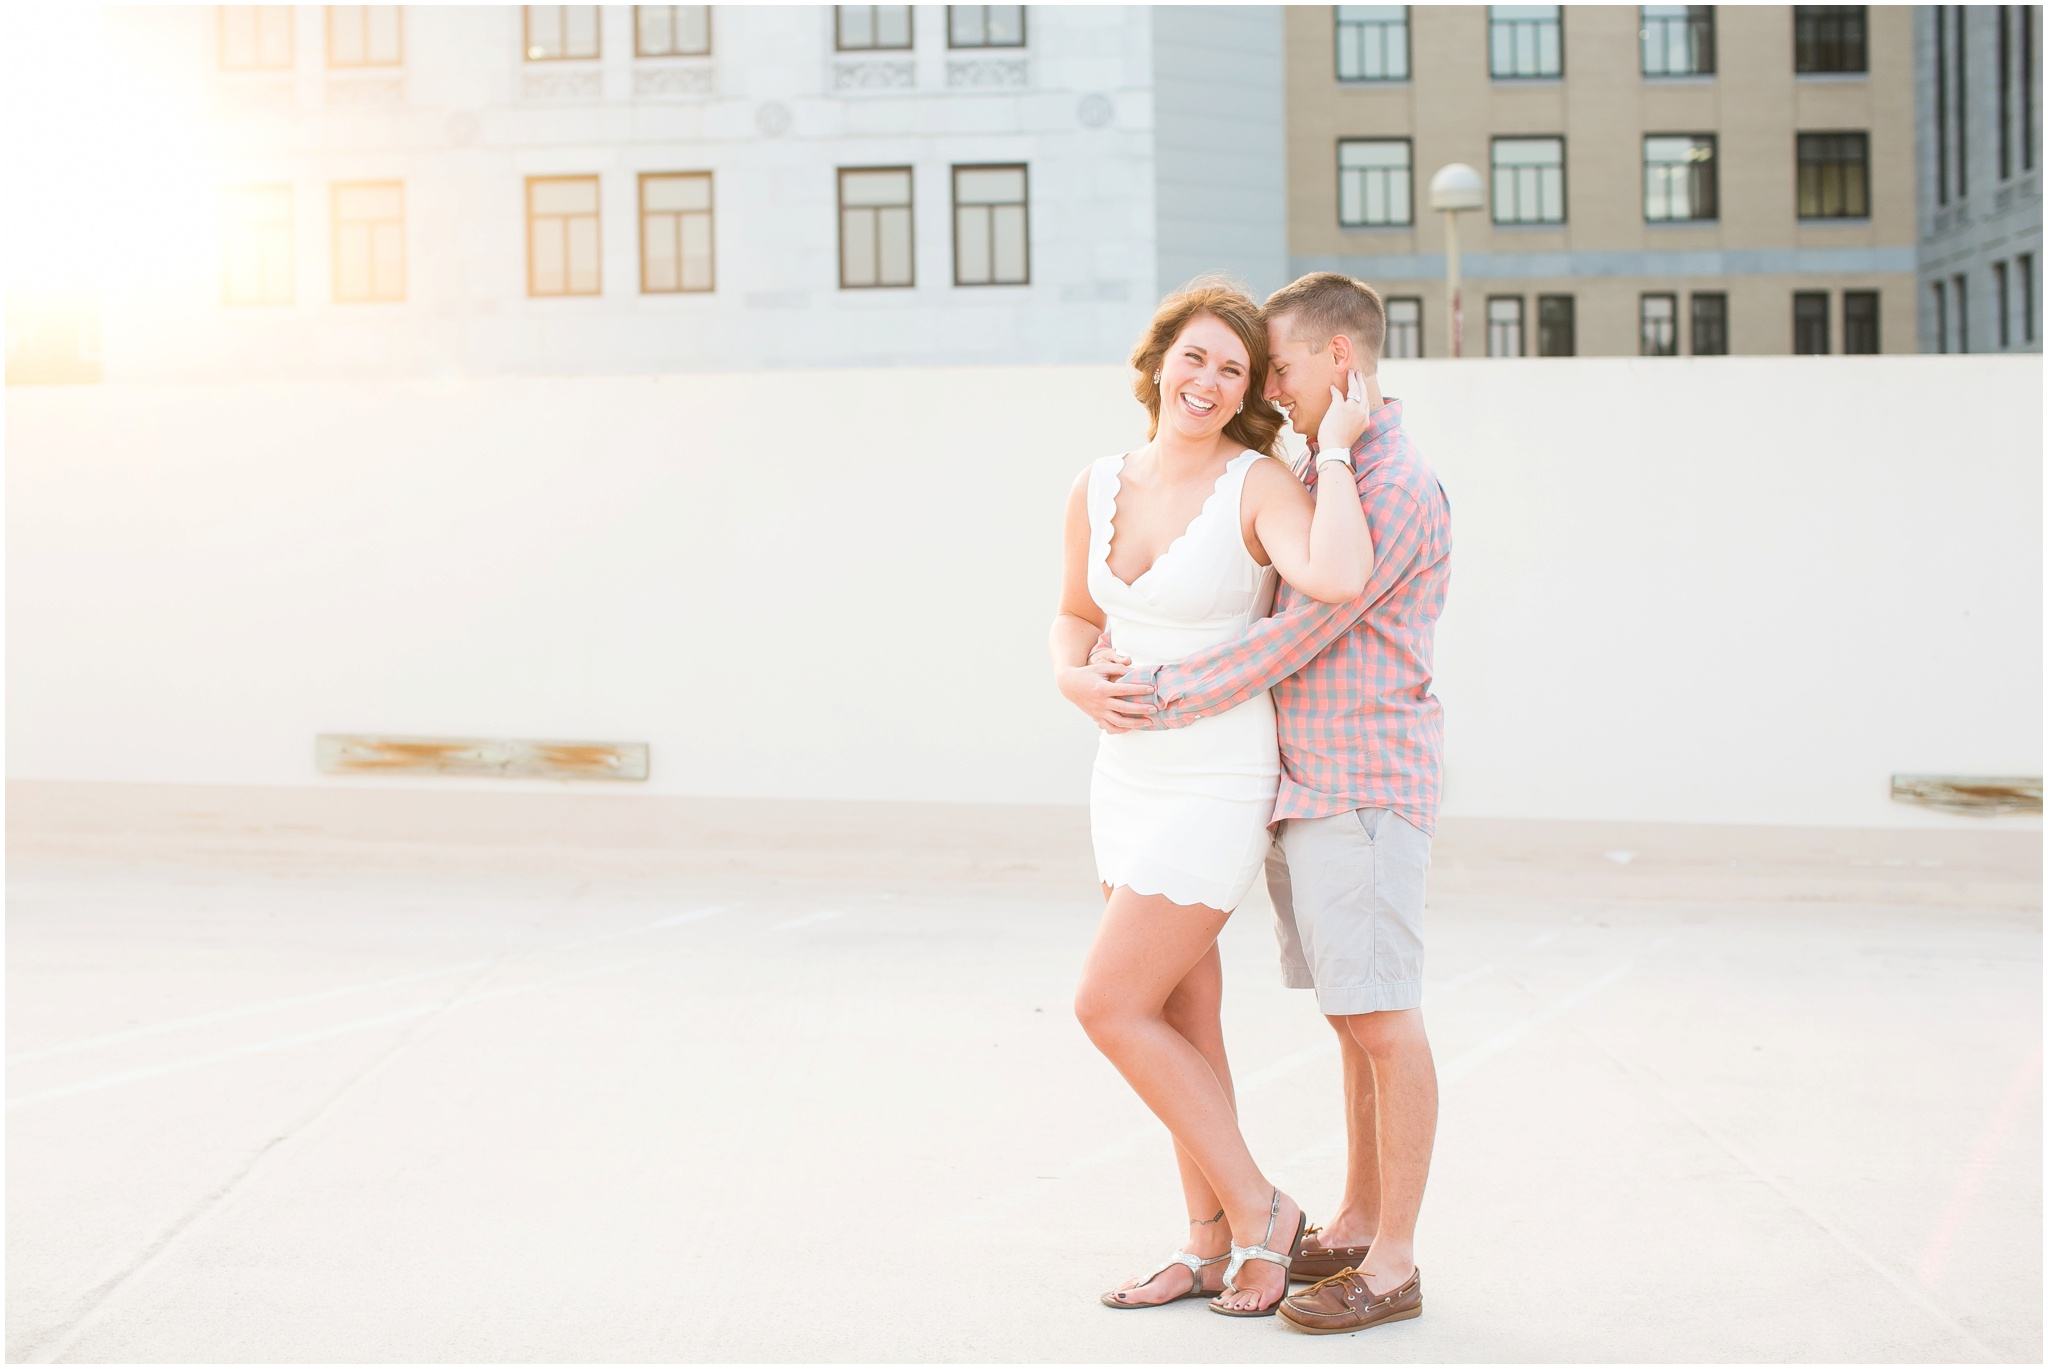 Downtown_Madison_Wisconsin_Engagement_Session_Waterfront_Monona_Terrace_0474.jpg